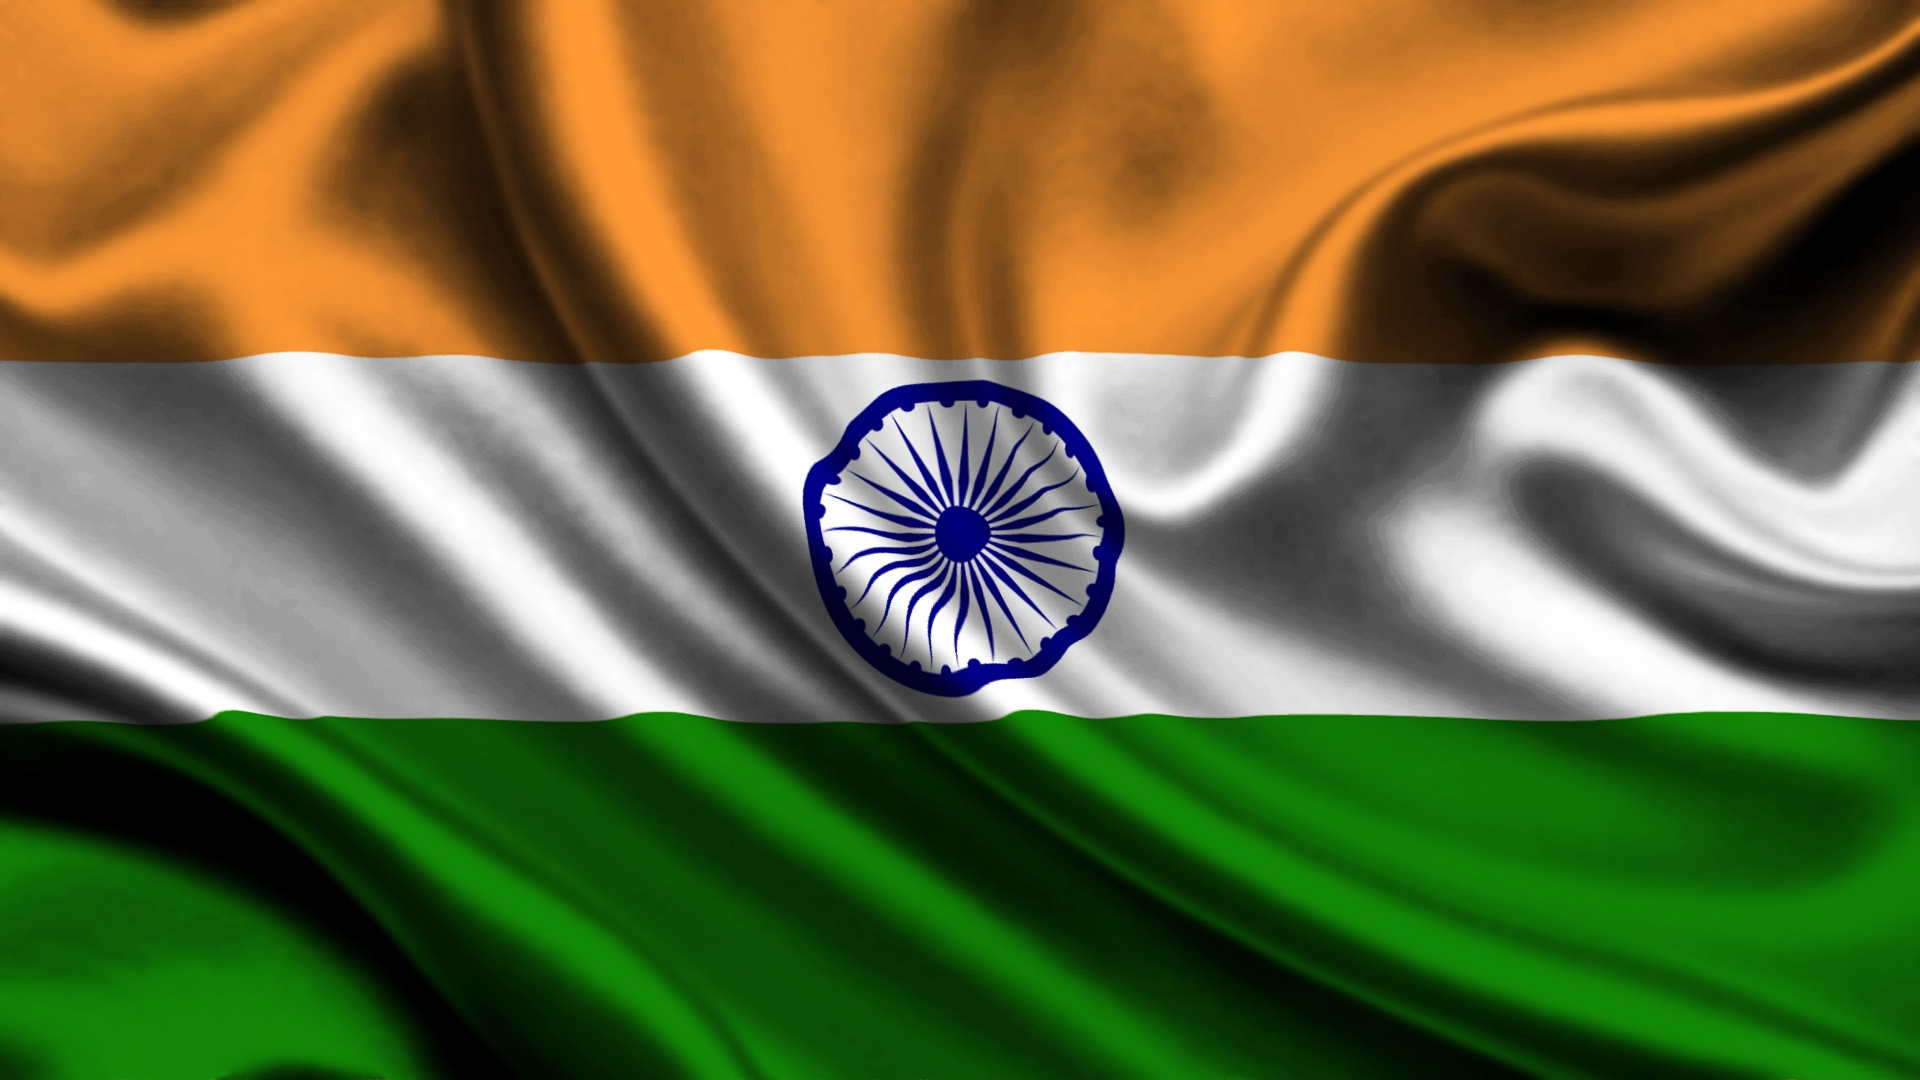 India Flag Hd: Flag Wallpapers, Photos And Desktop Backgrounds Up To 8K